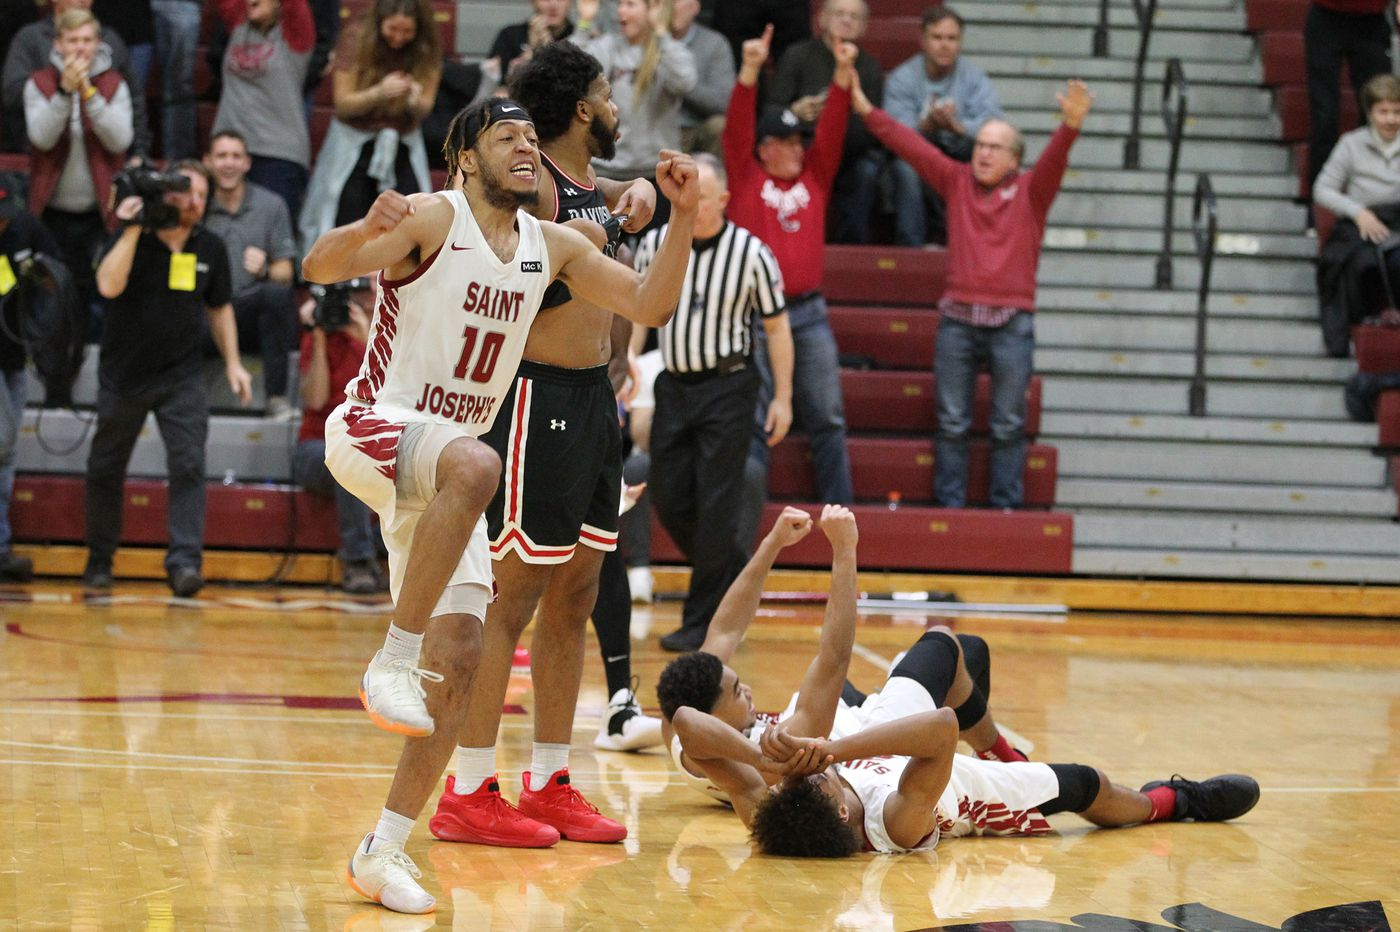 Undermanned St. Joseph's knocks off Davidson to end four-game losing streak